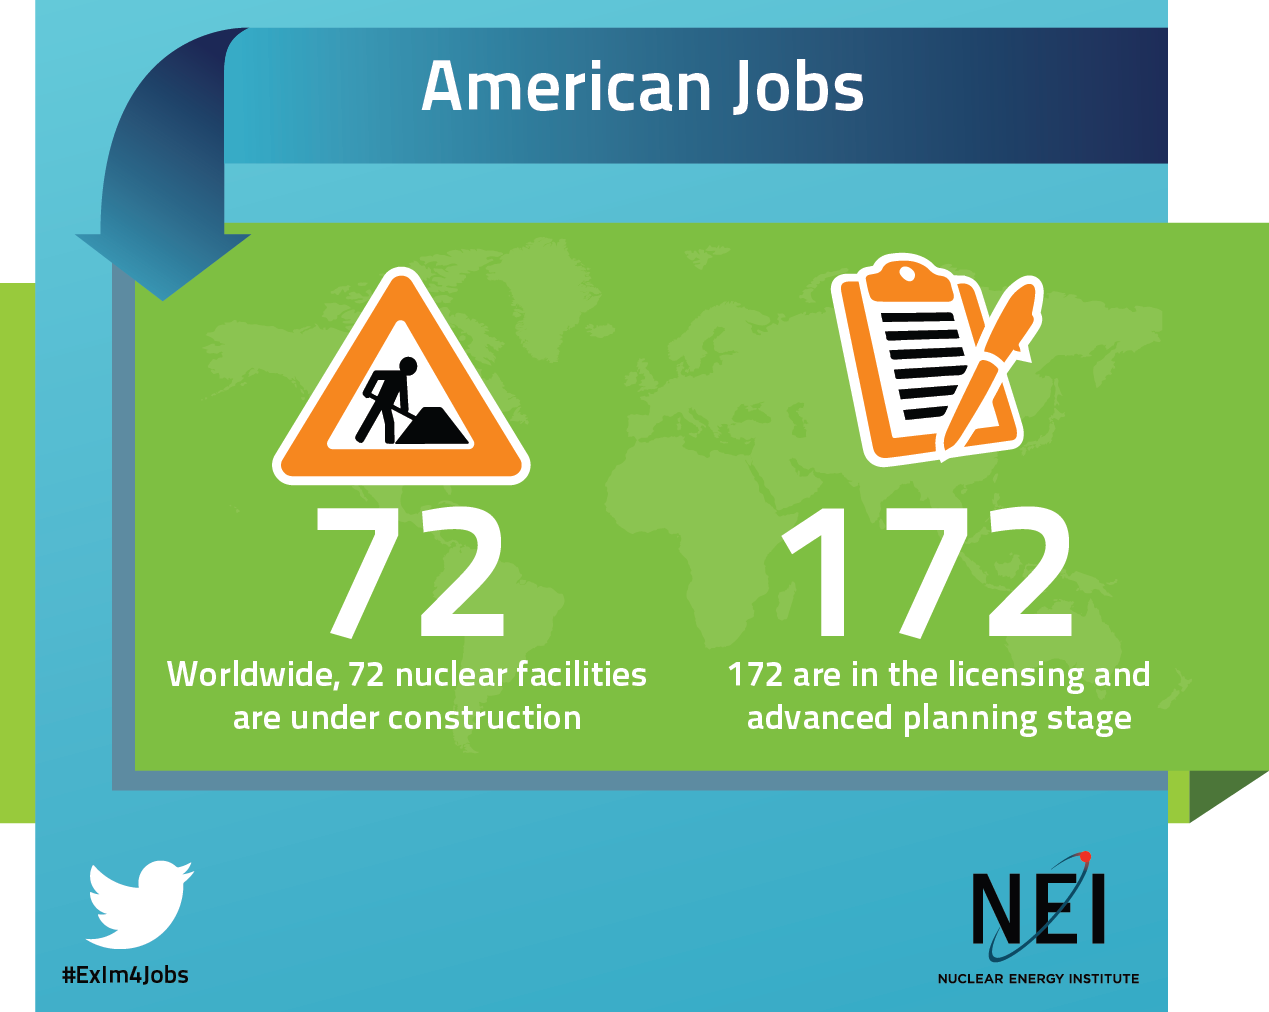 Worldwide, 72 nuclear facilities are under construction.